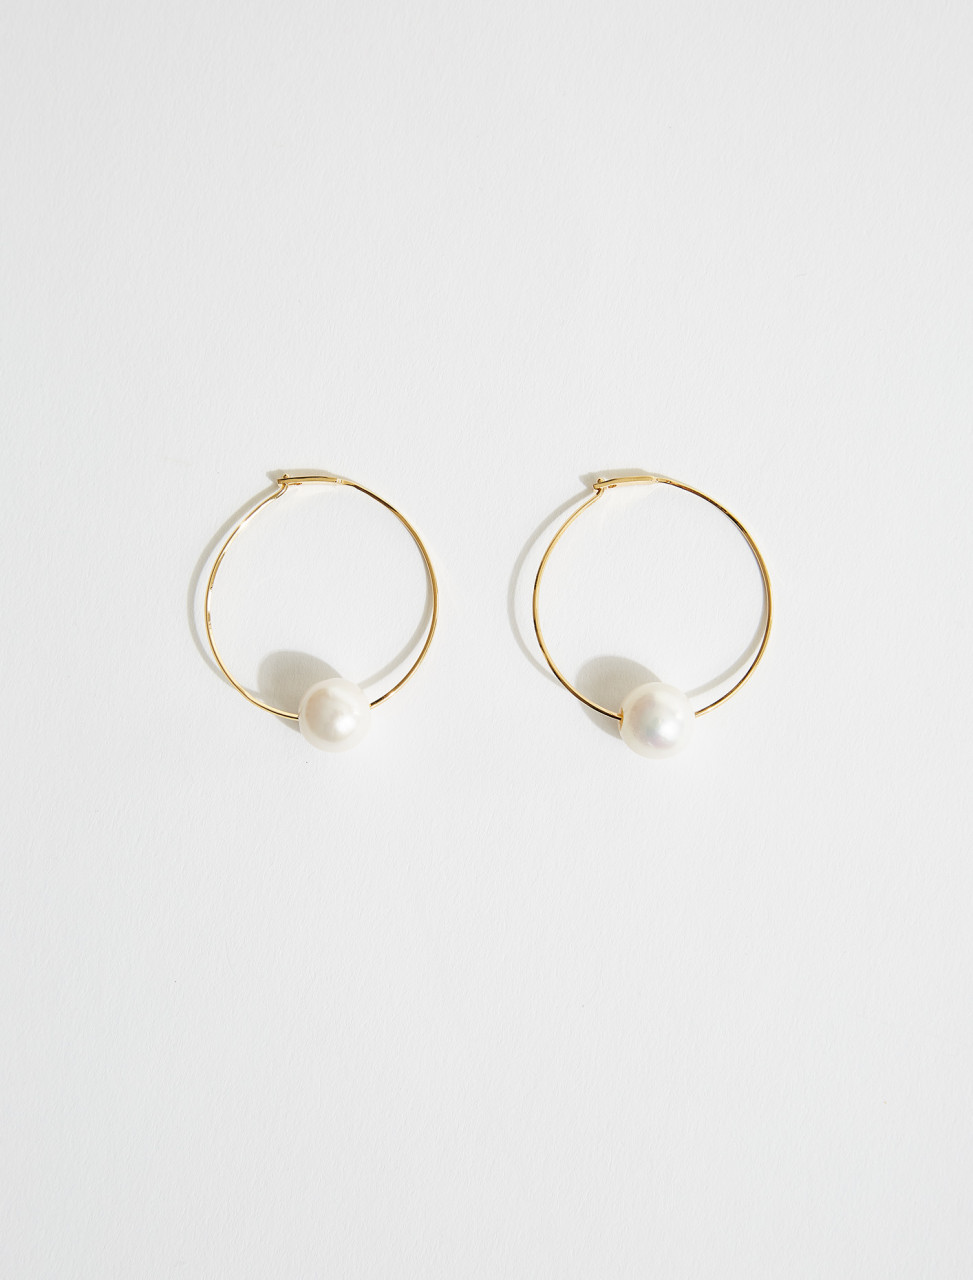 JSPS837124-WSS80048-102 JIL SANDER STEM EARRINGS IN NATURAL